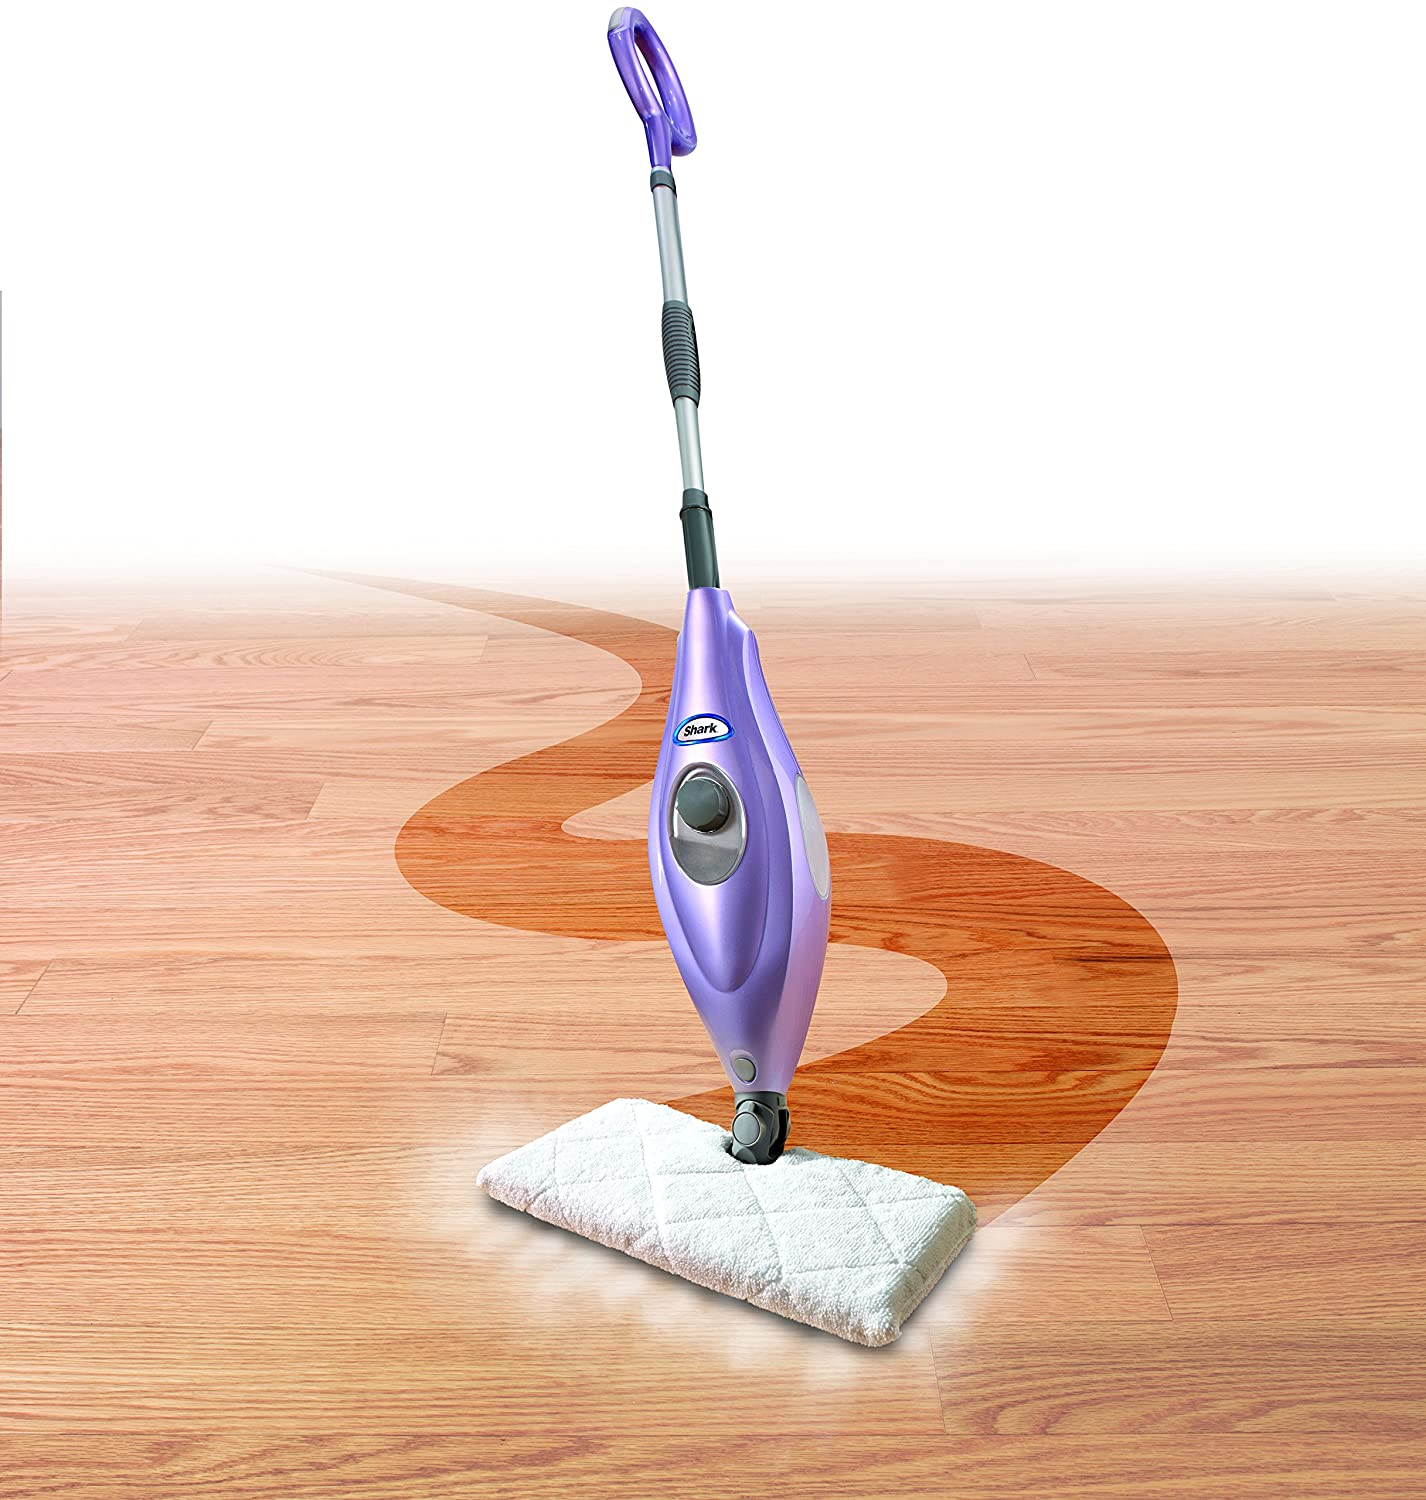 Review Of The Shark Steam Pocket Mop S3501 Kleen Floor